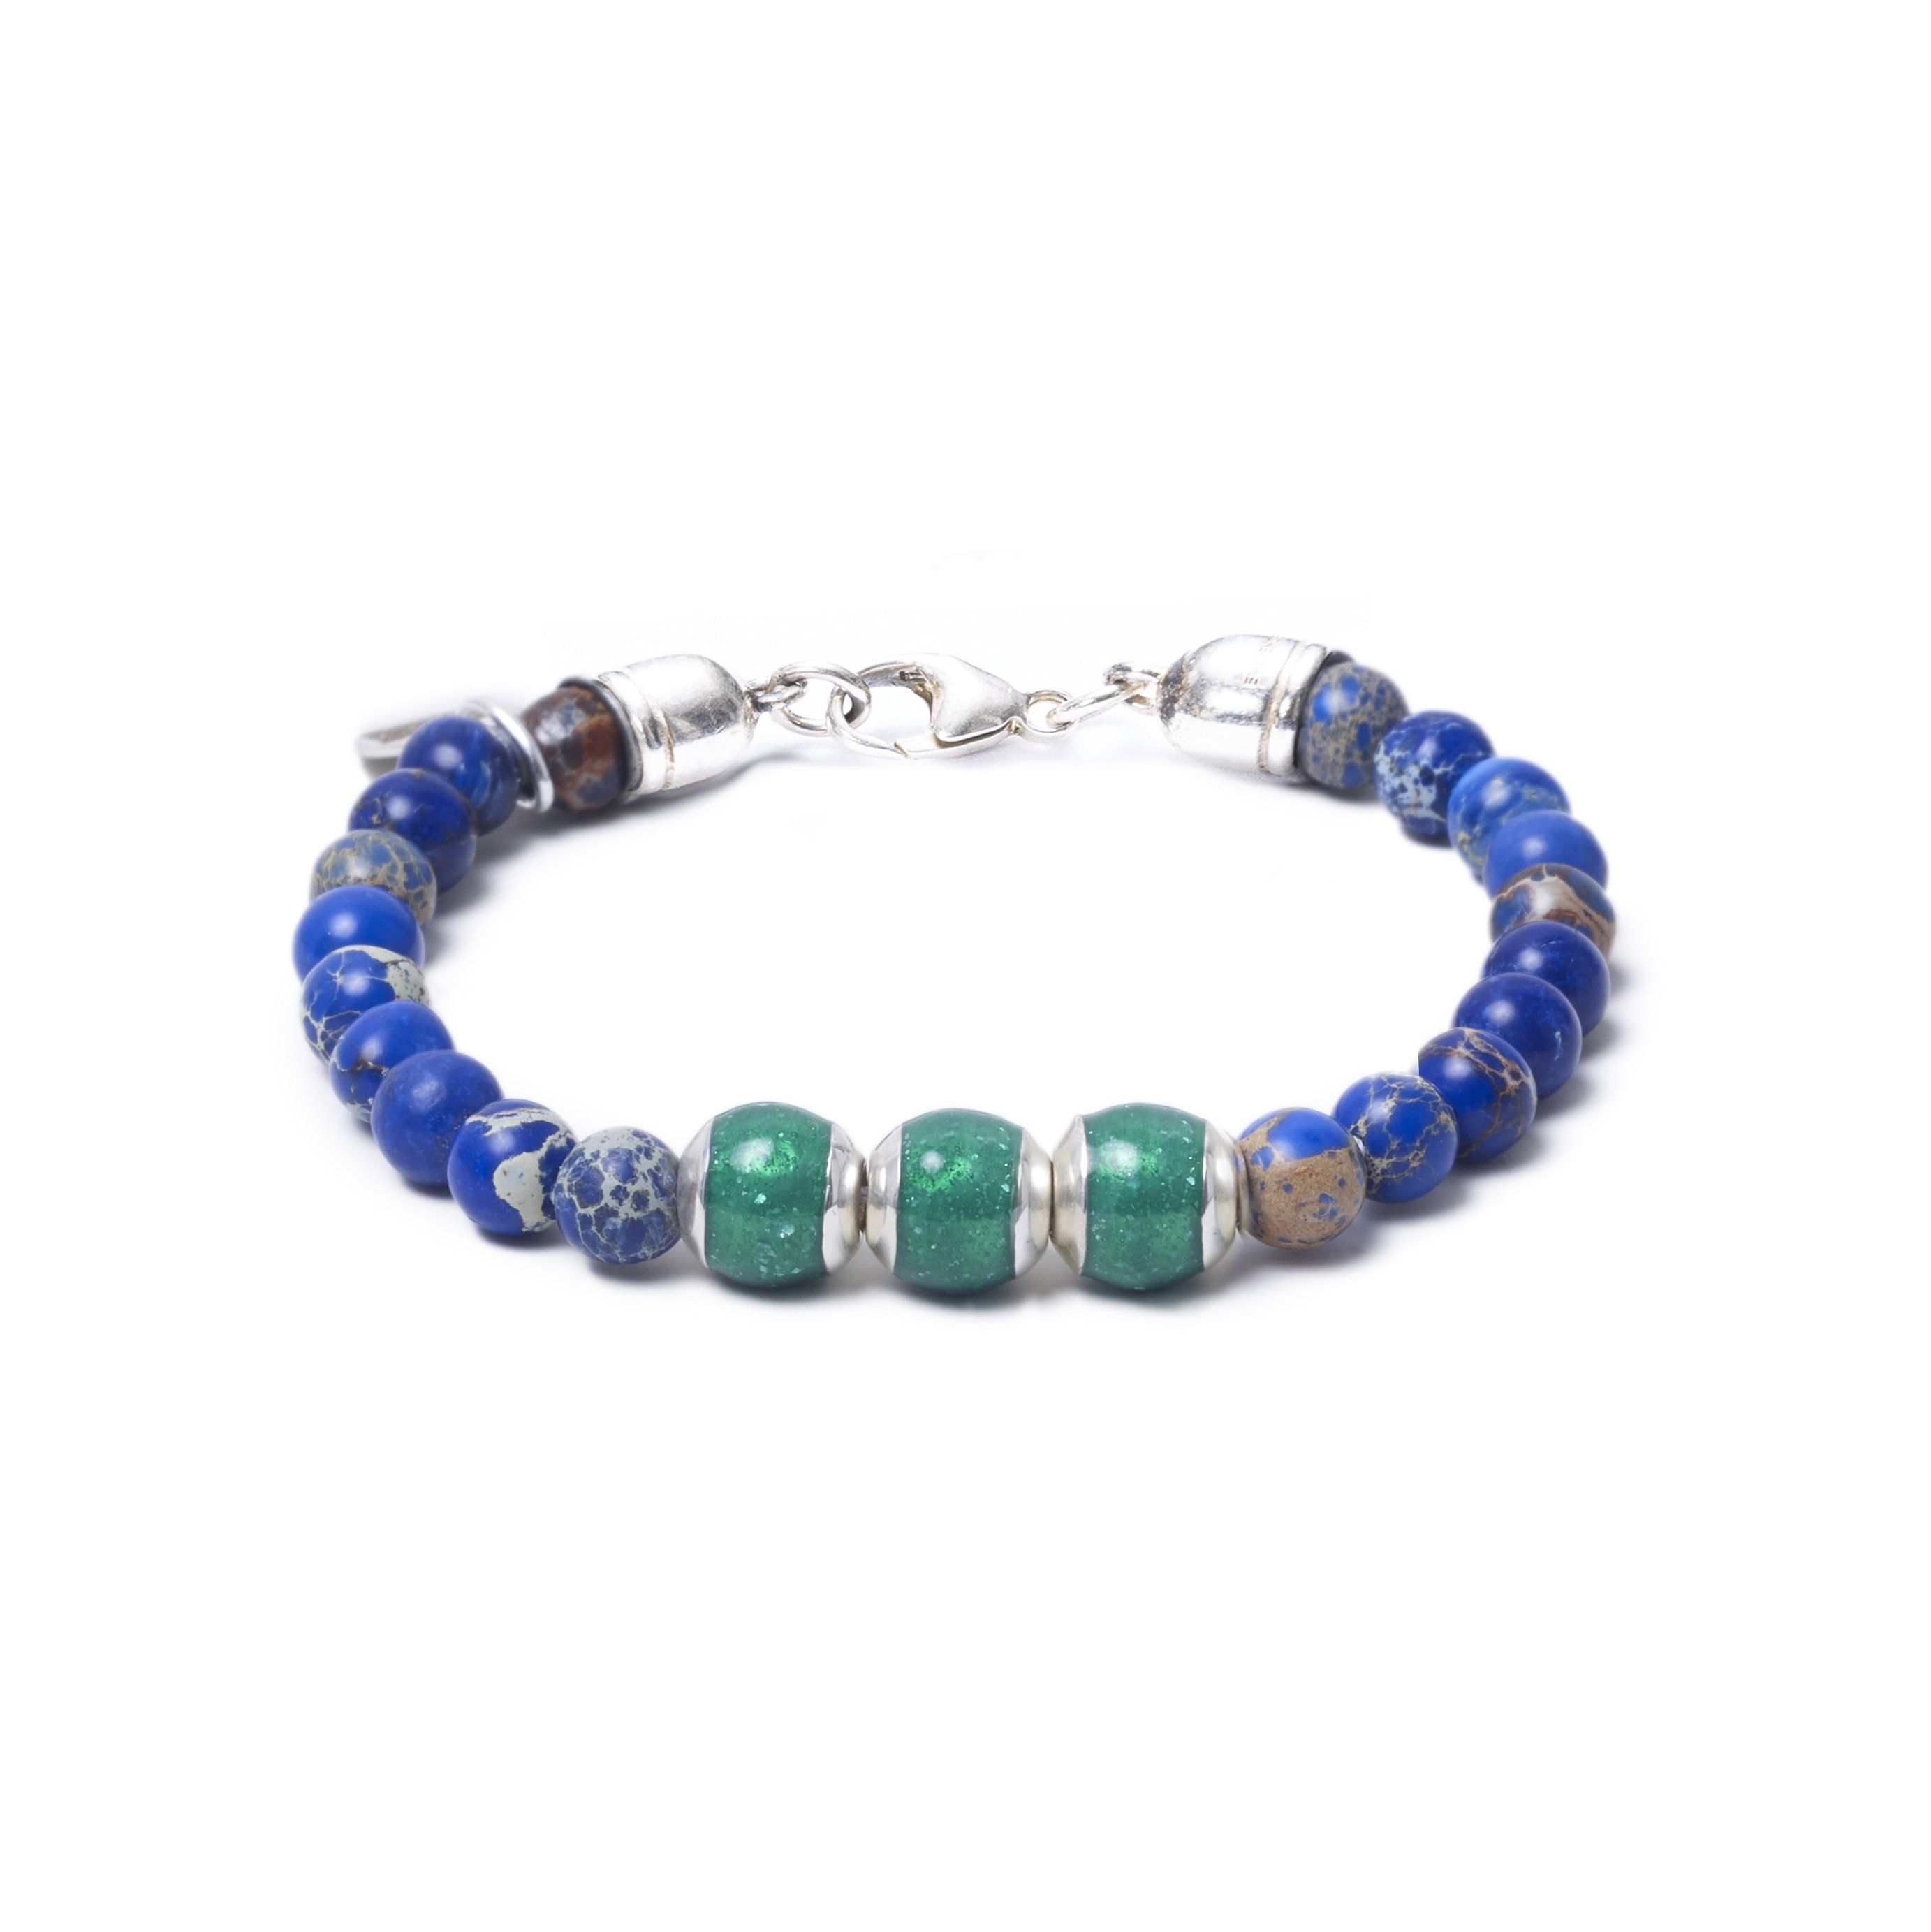 Blue Sea Jasper, Three Everence Beads everence.life Green Lobster Claw 7